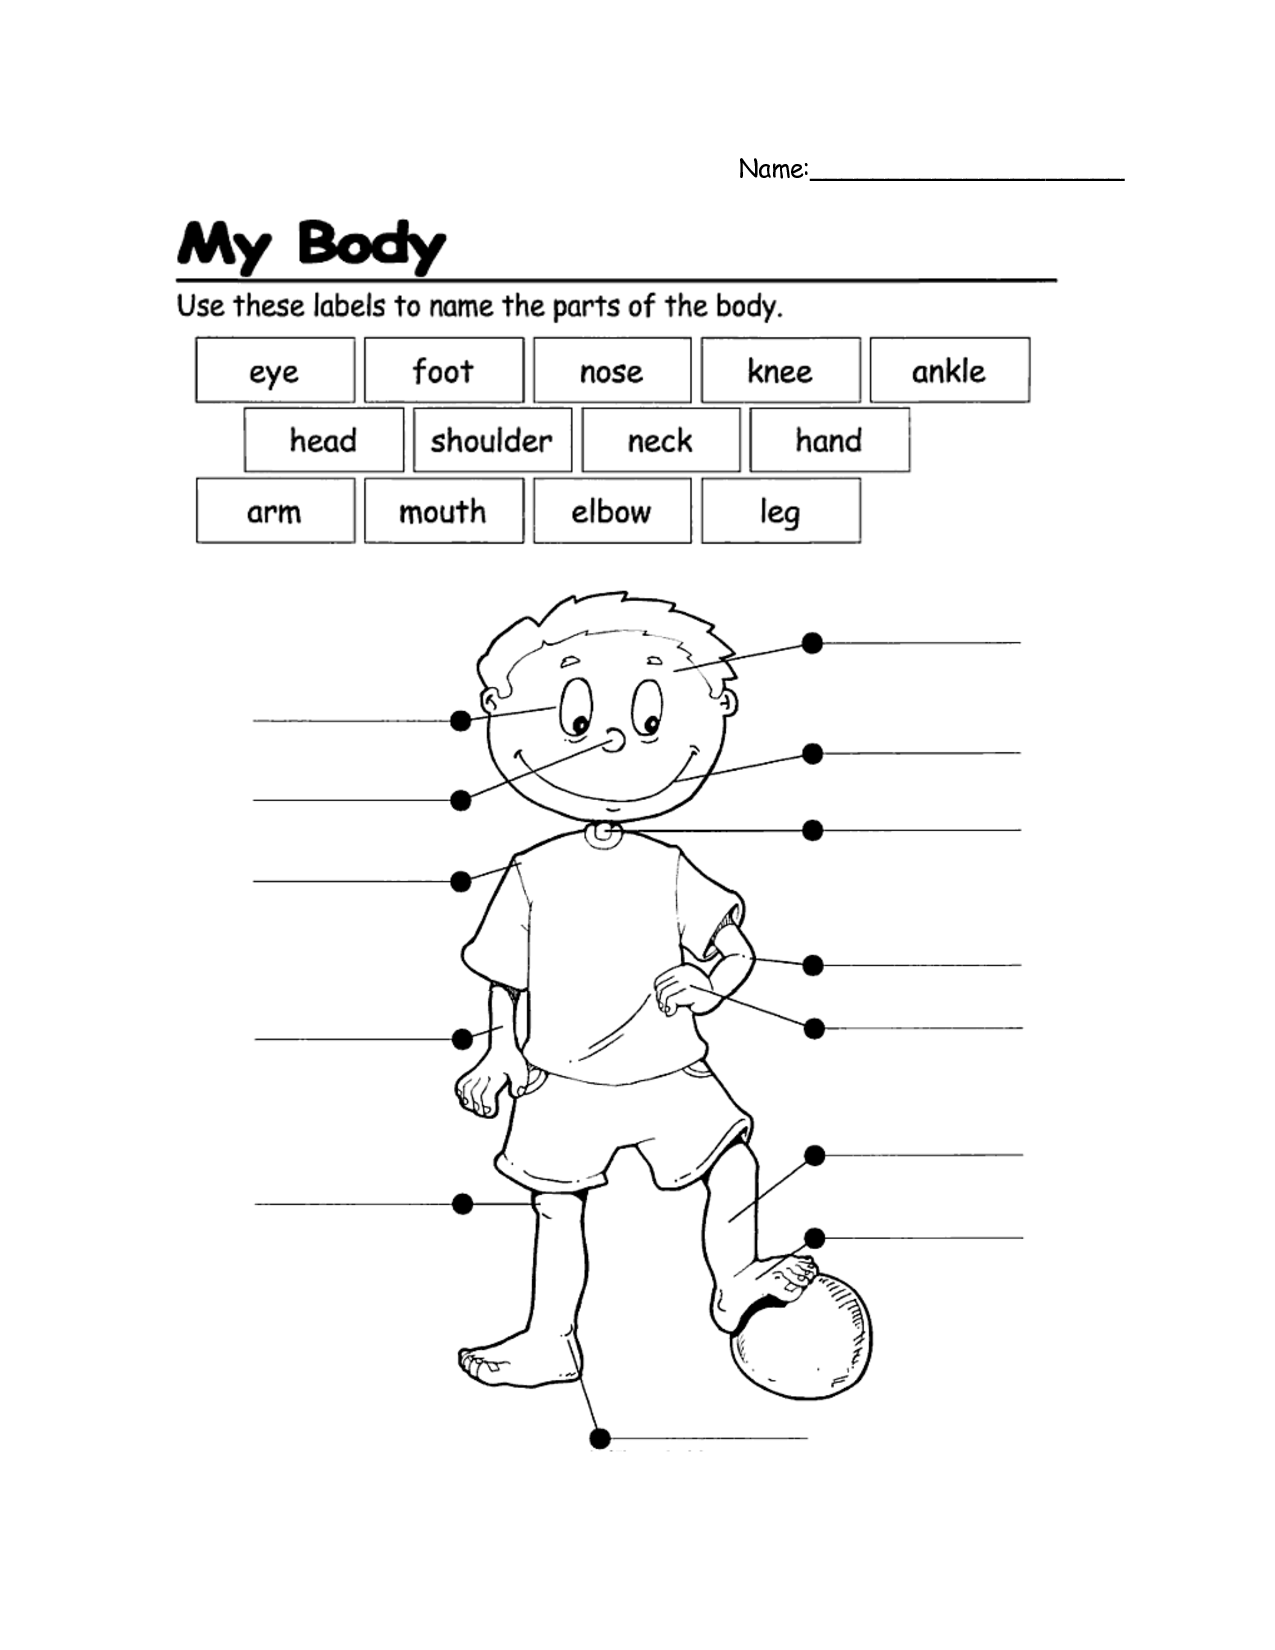 21 Awesome Label The Parts Of The Body Worksheet For Kids